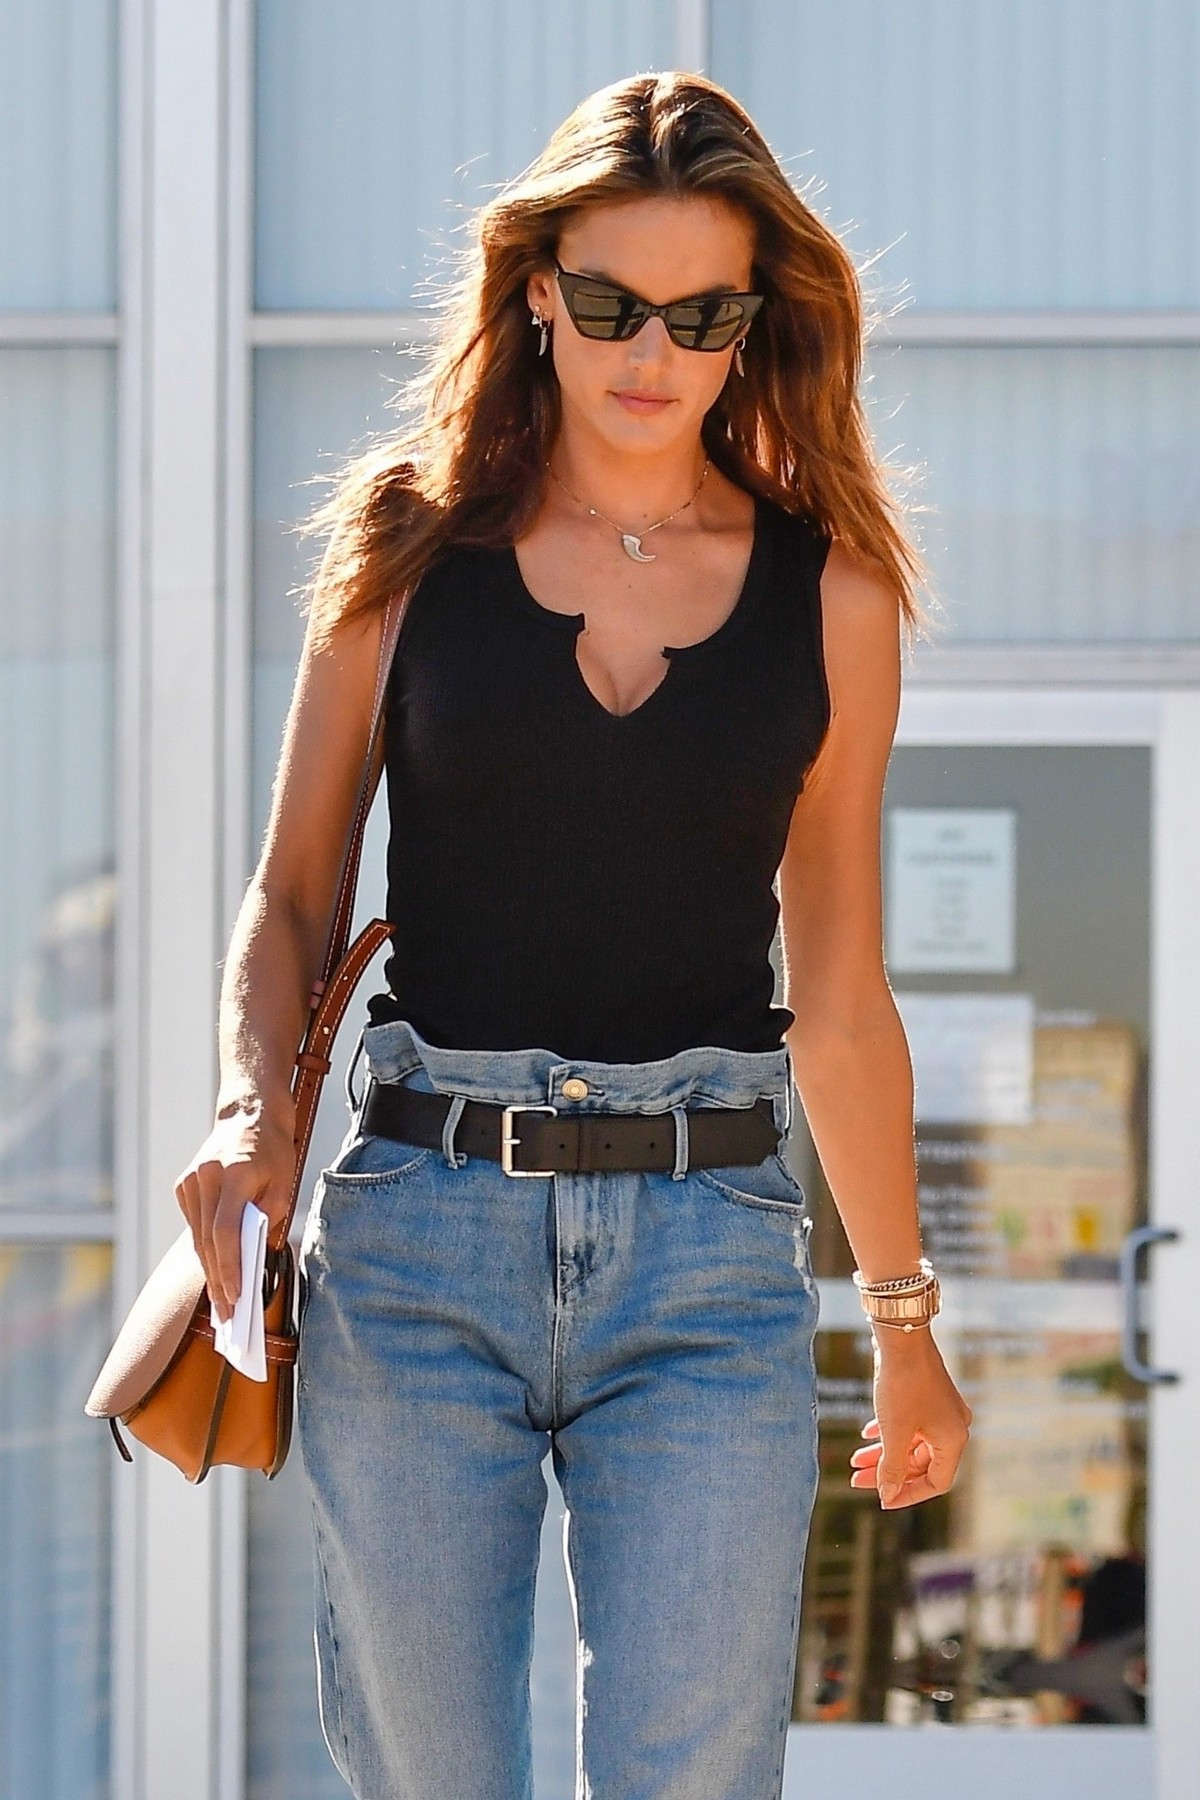 Alessandra Ambrosio in Black Top and Blue Jeans out in Los Angeles 2019/11/18 25